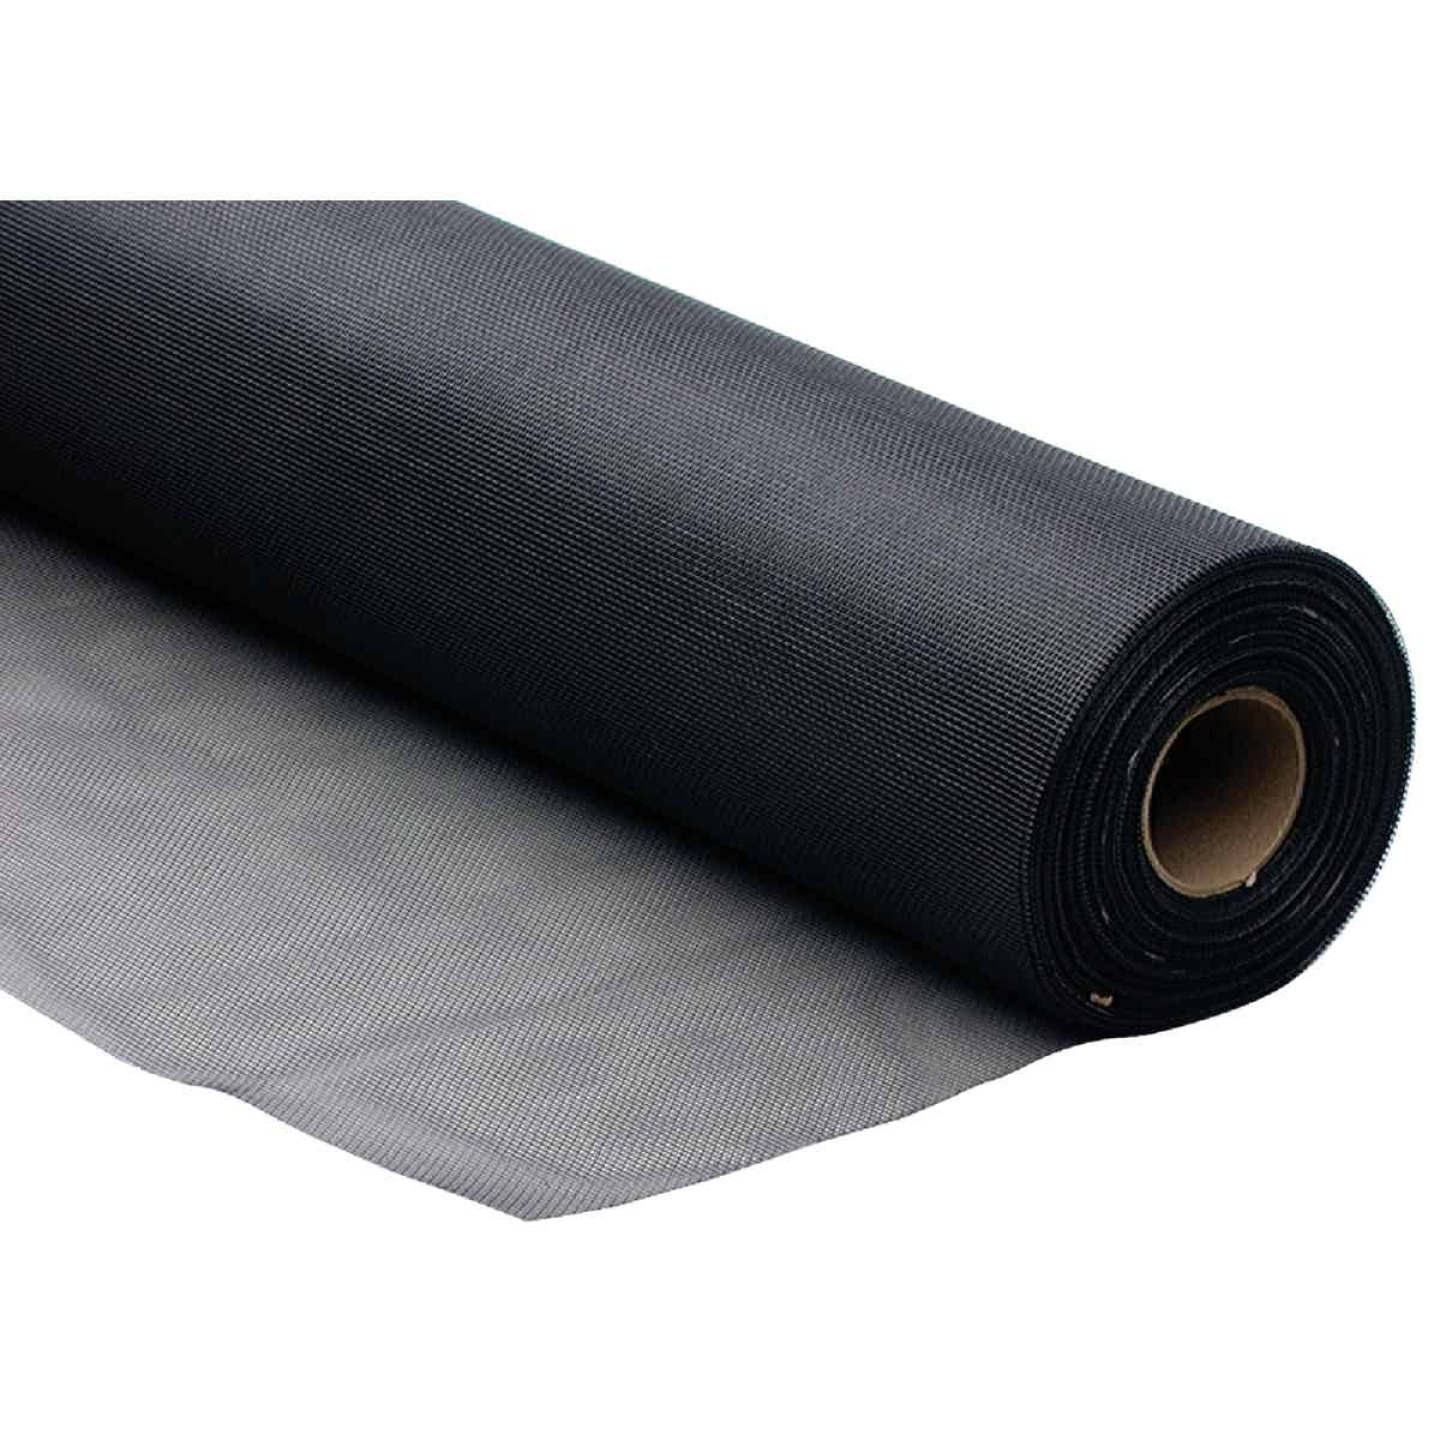 Phifer 30 In. x 100 Ft. Charcoal Fiberglass Mesh Screen Cloth Image 3